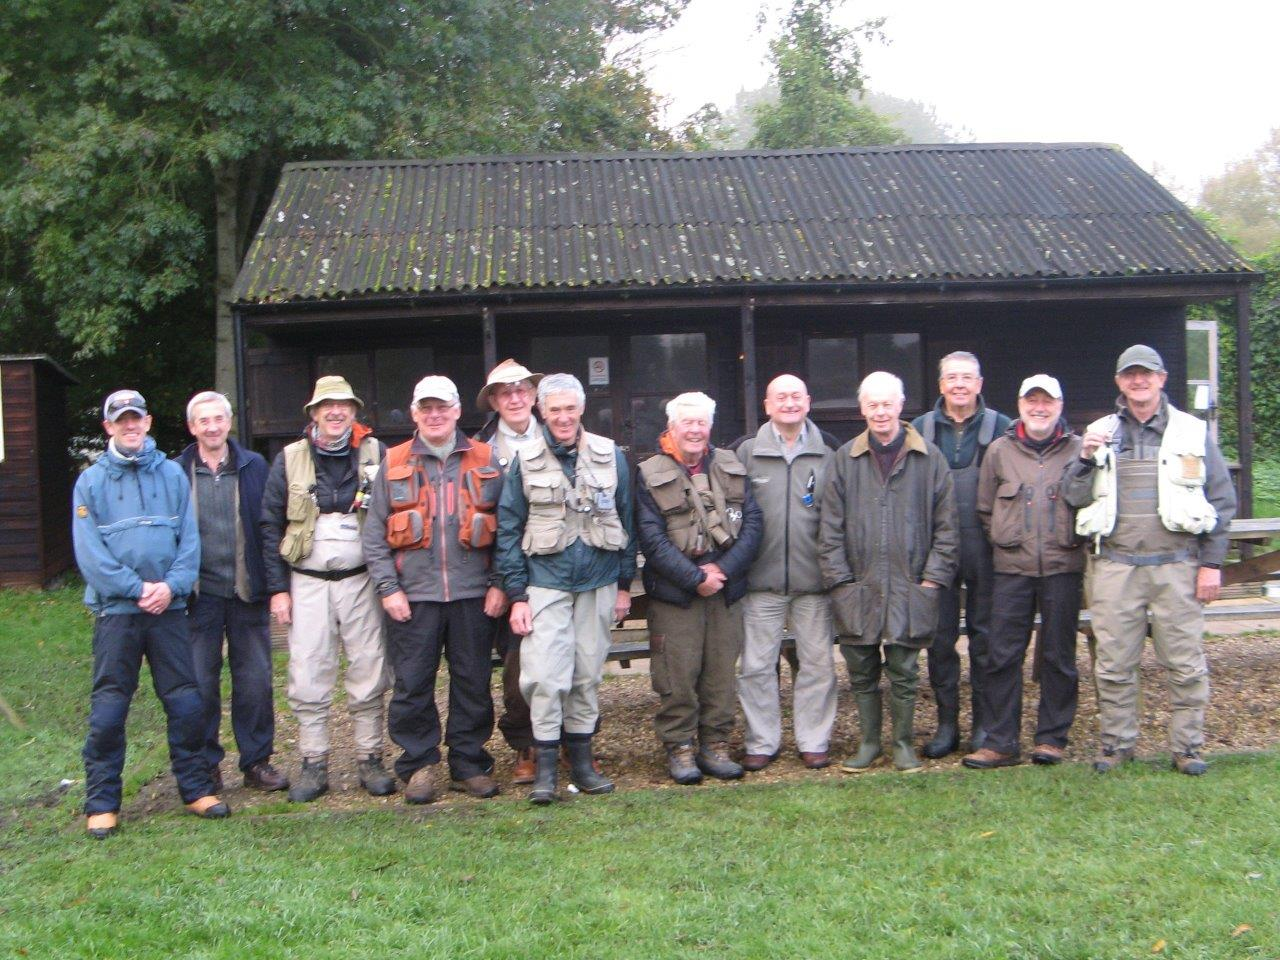 The Chiltern anglers at the Wherwell Fishing Lodge.